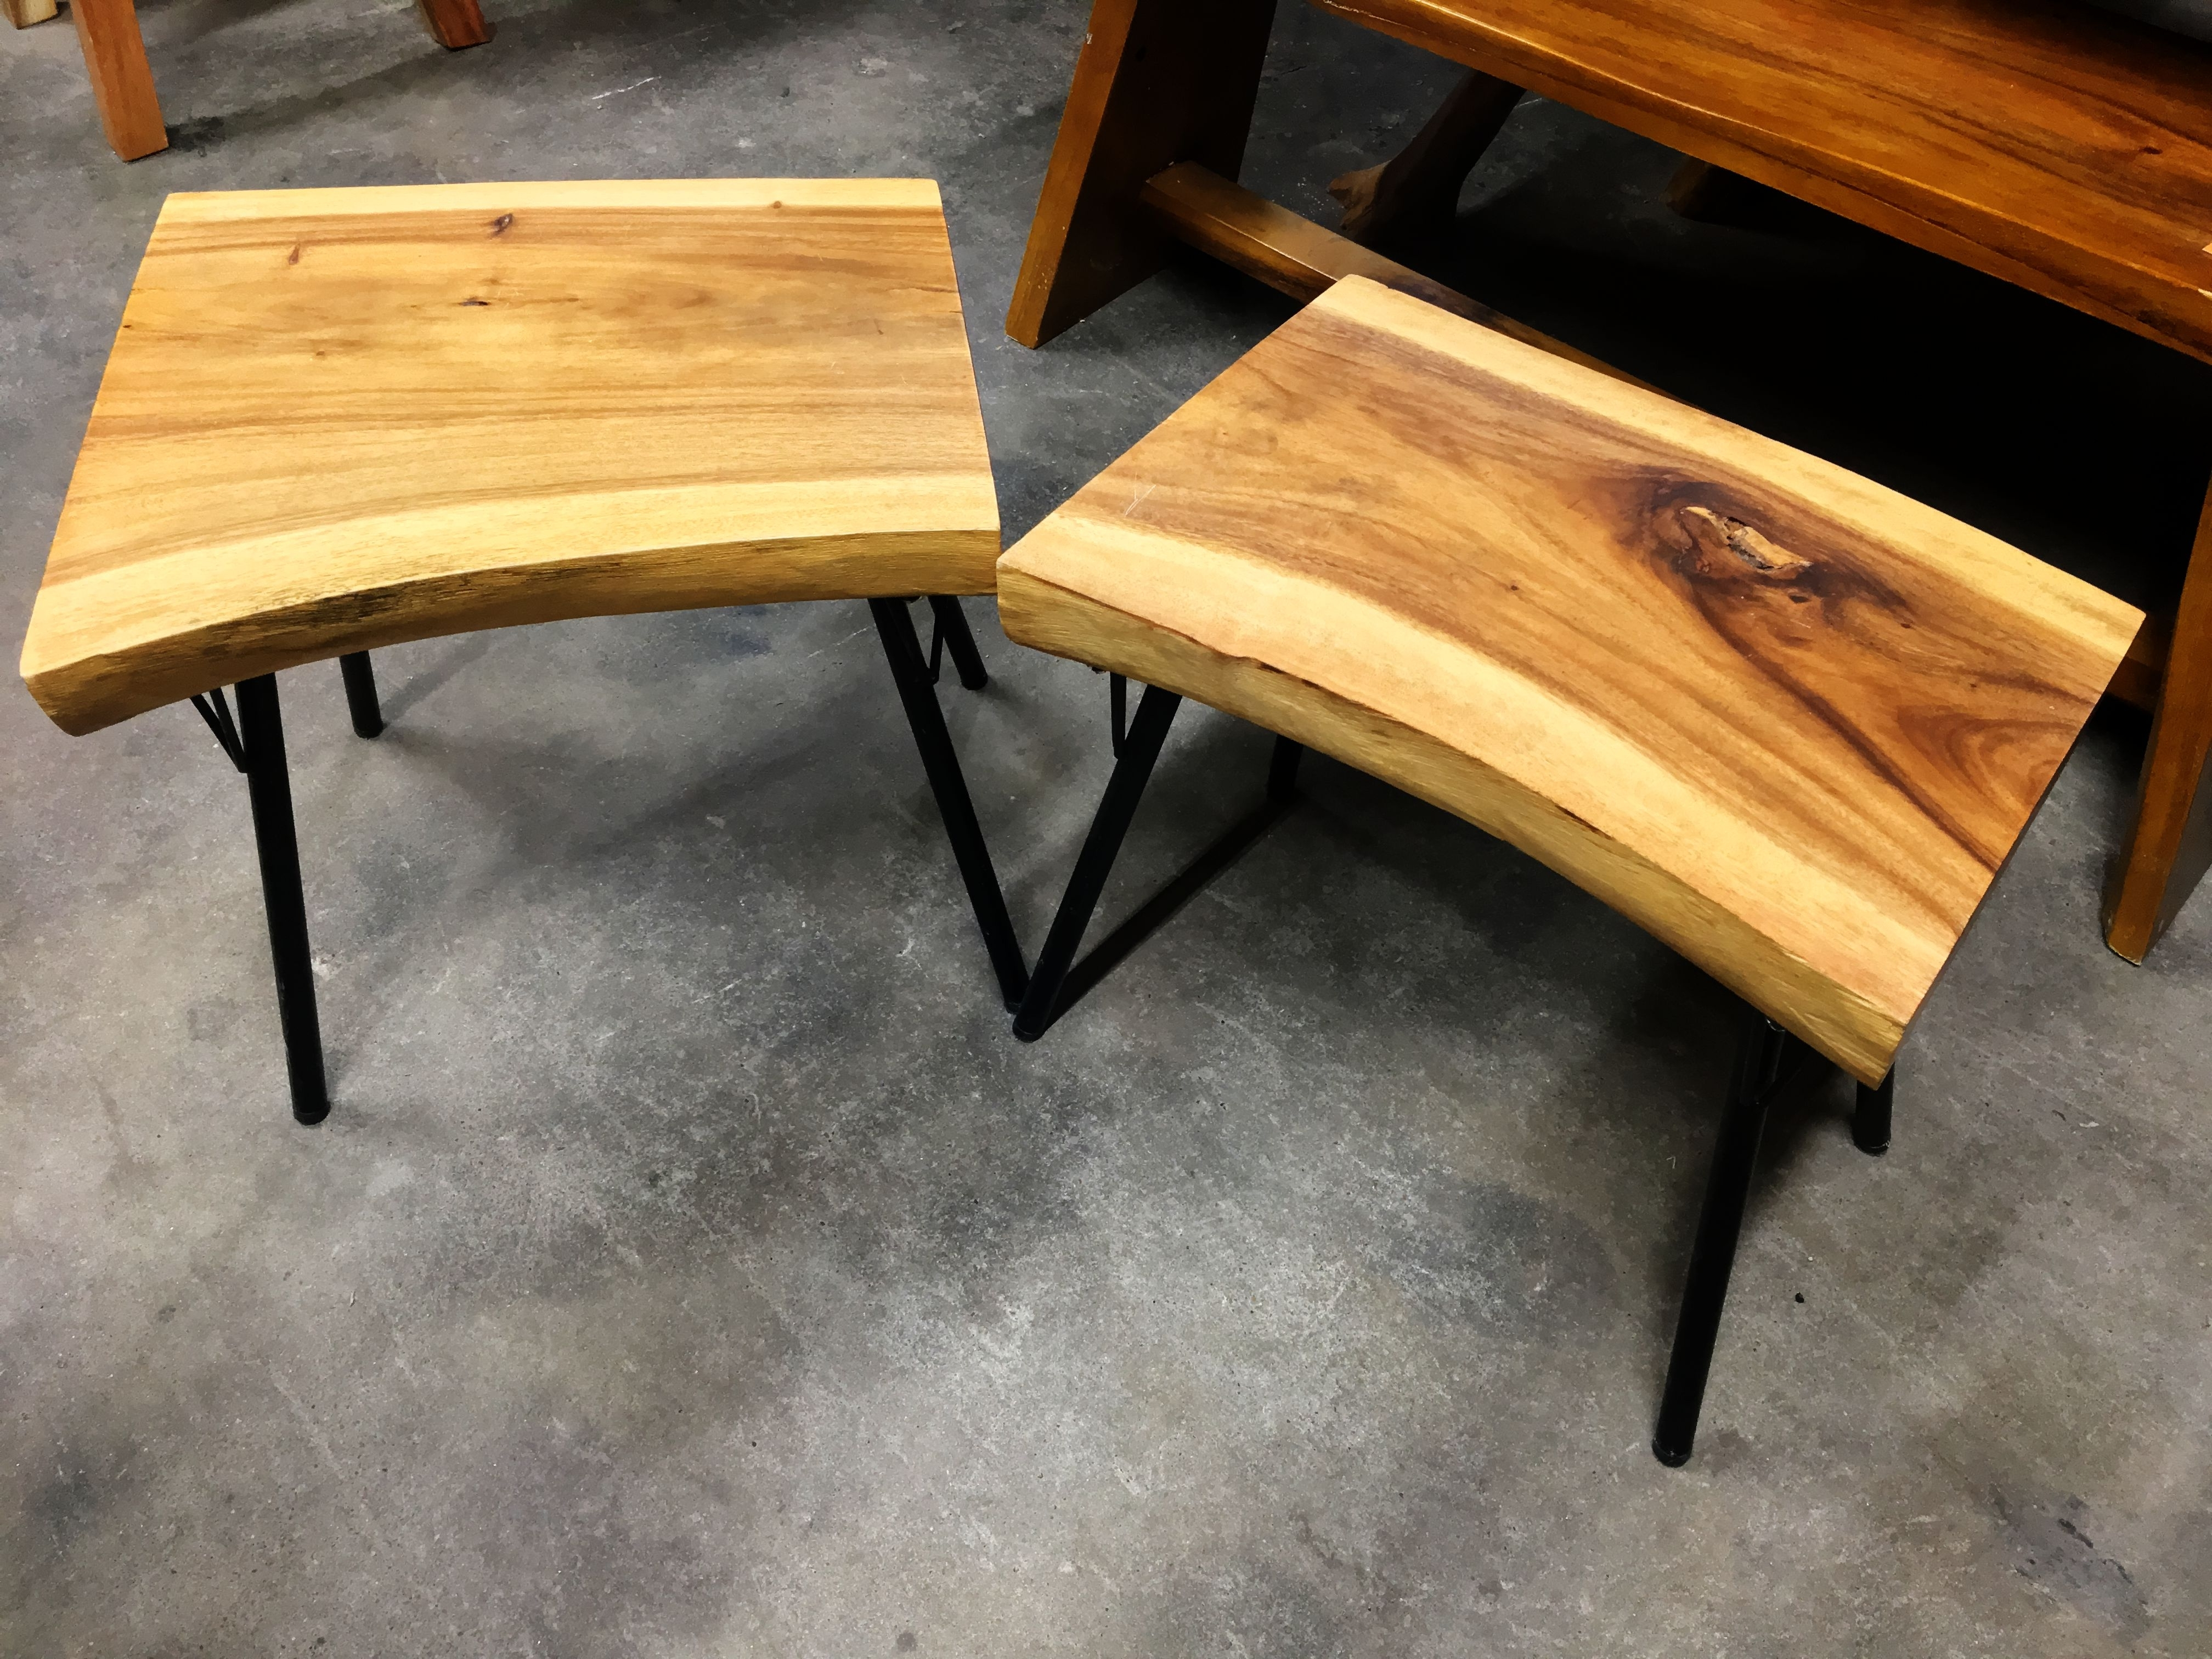 Live Edge Teak Side Table – Metal Legs – Primefurniturehouston With Most Current Live Edge Teak Coffee Tables (View 12 of 20)